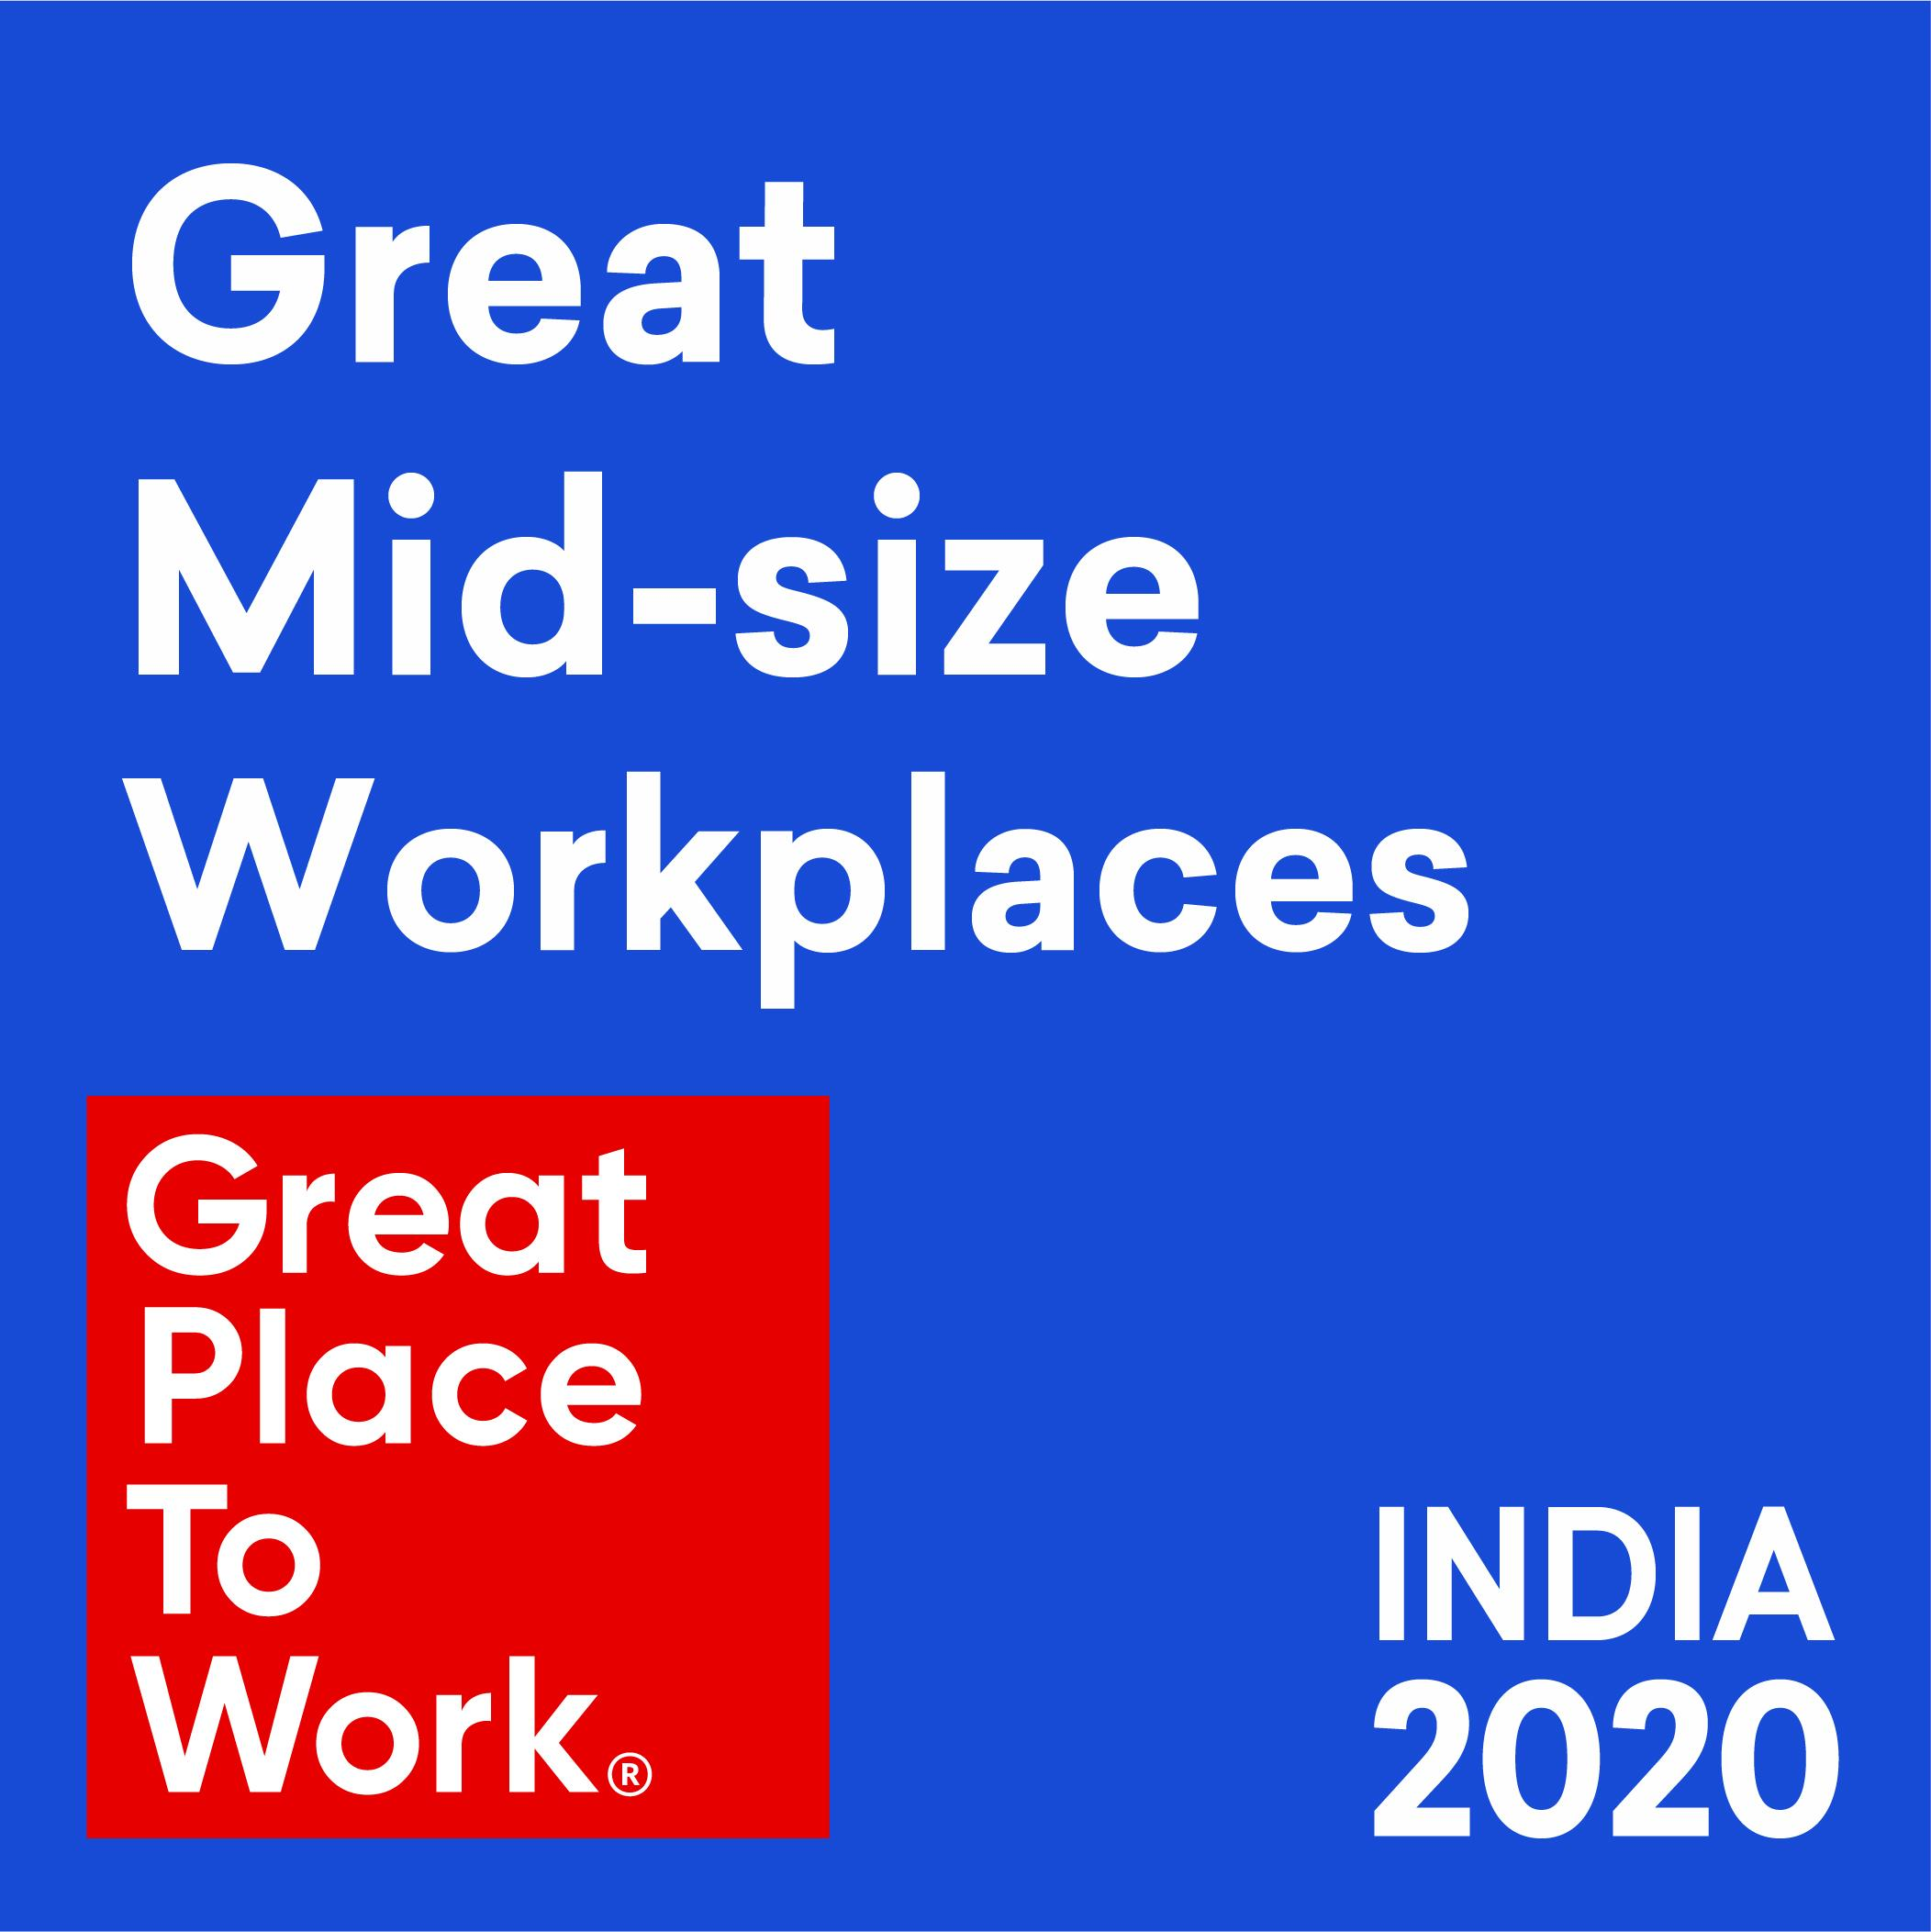 Great Mid-size Workplaces | Great Place to Work India 2020